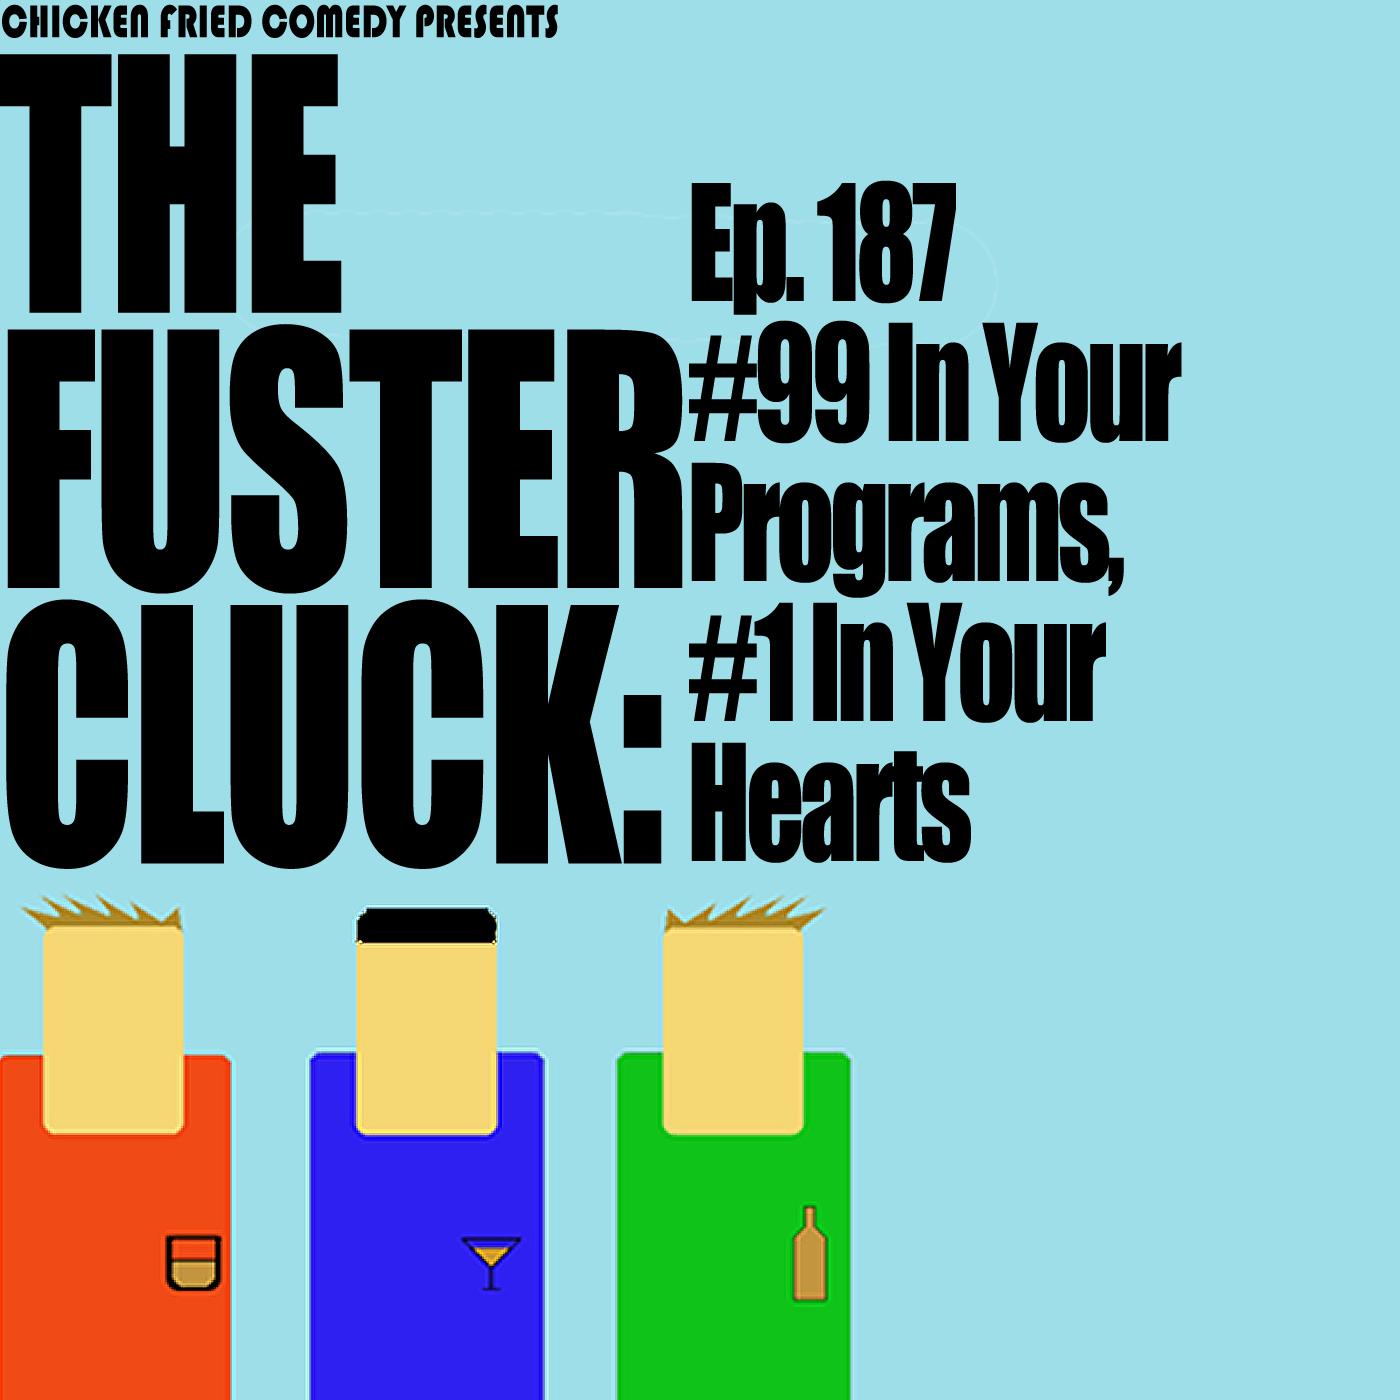 The Fustercluck Ep 187: #99 In Your Programs, #1 In Your Hearts